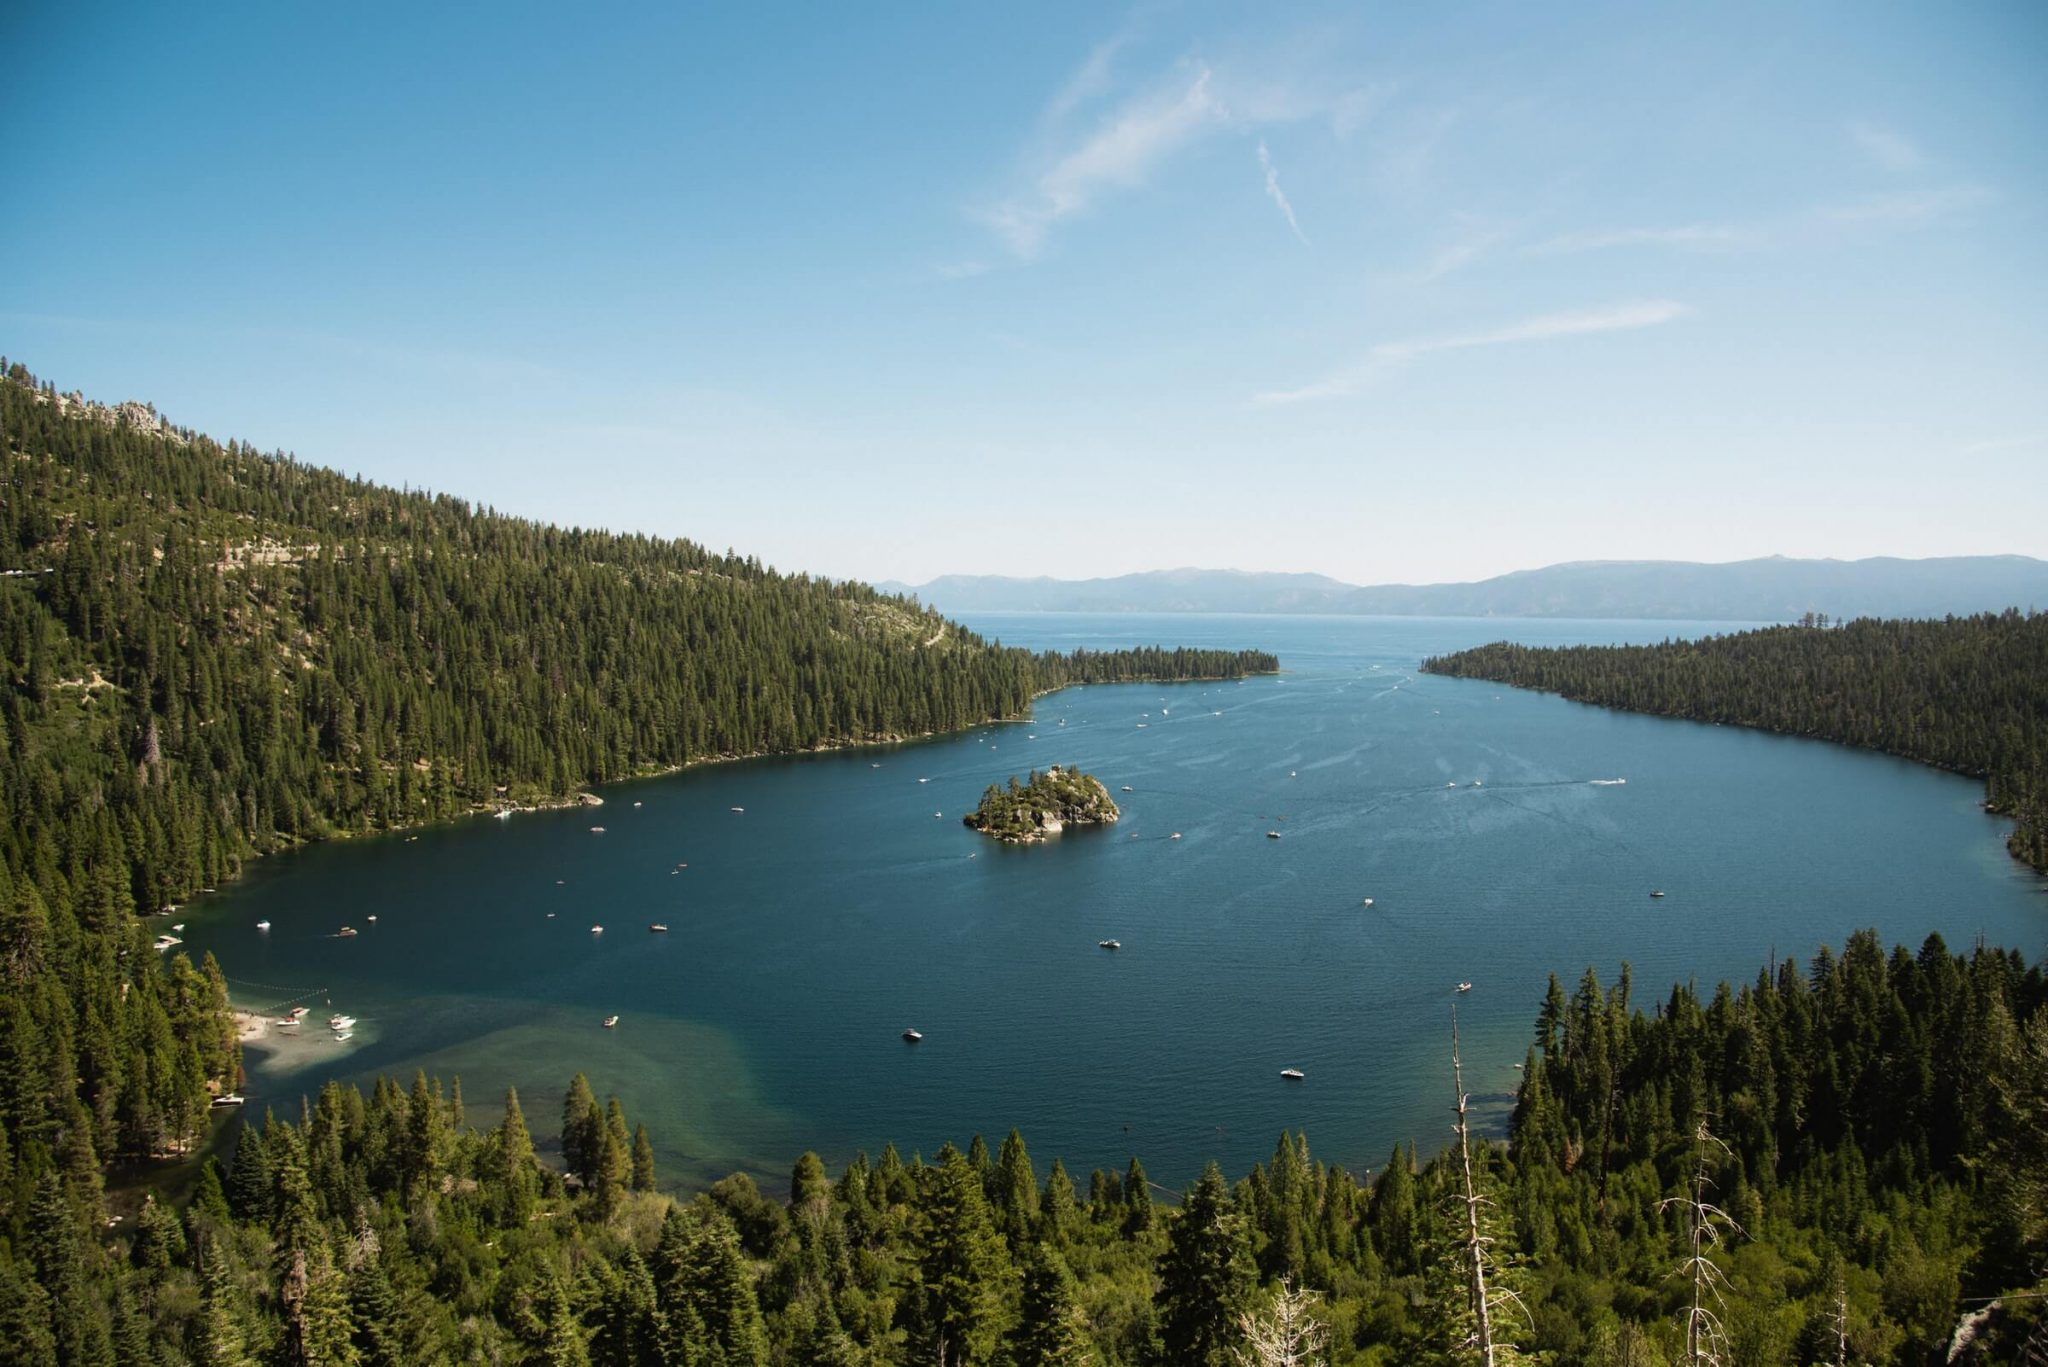 Lake Tahoe getaway from Sacramento as a day trip